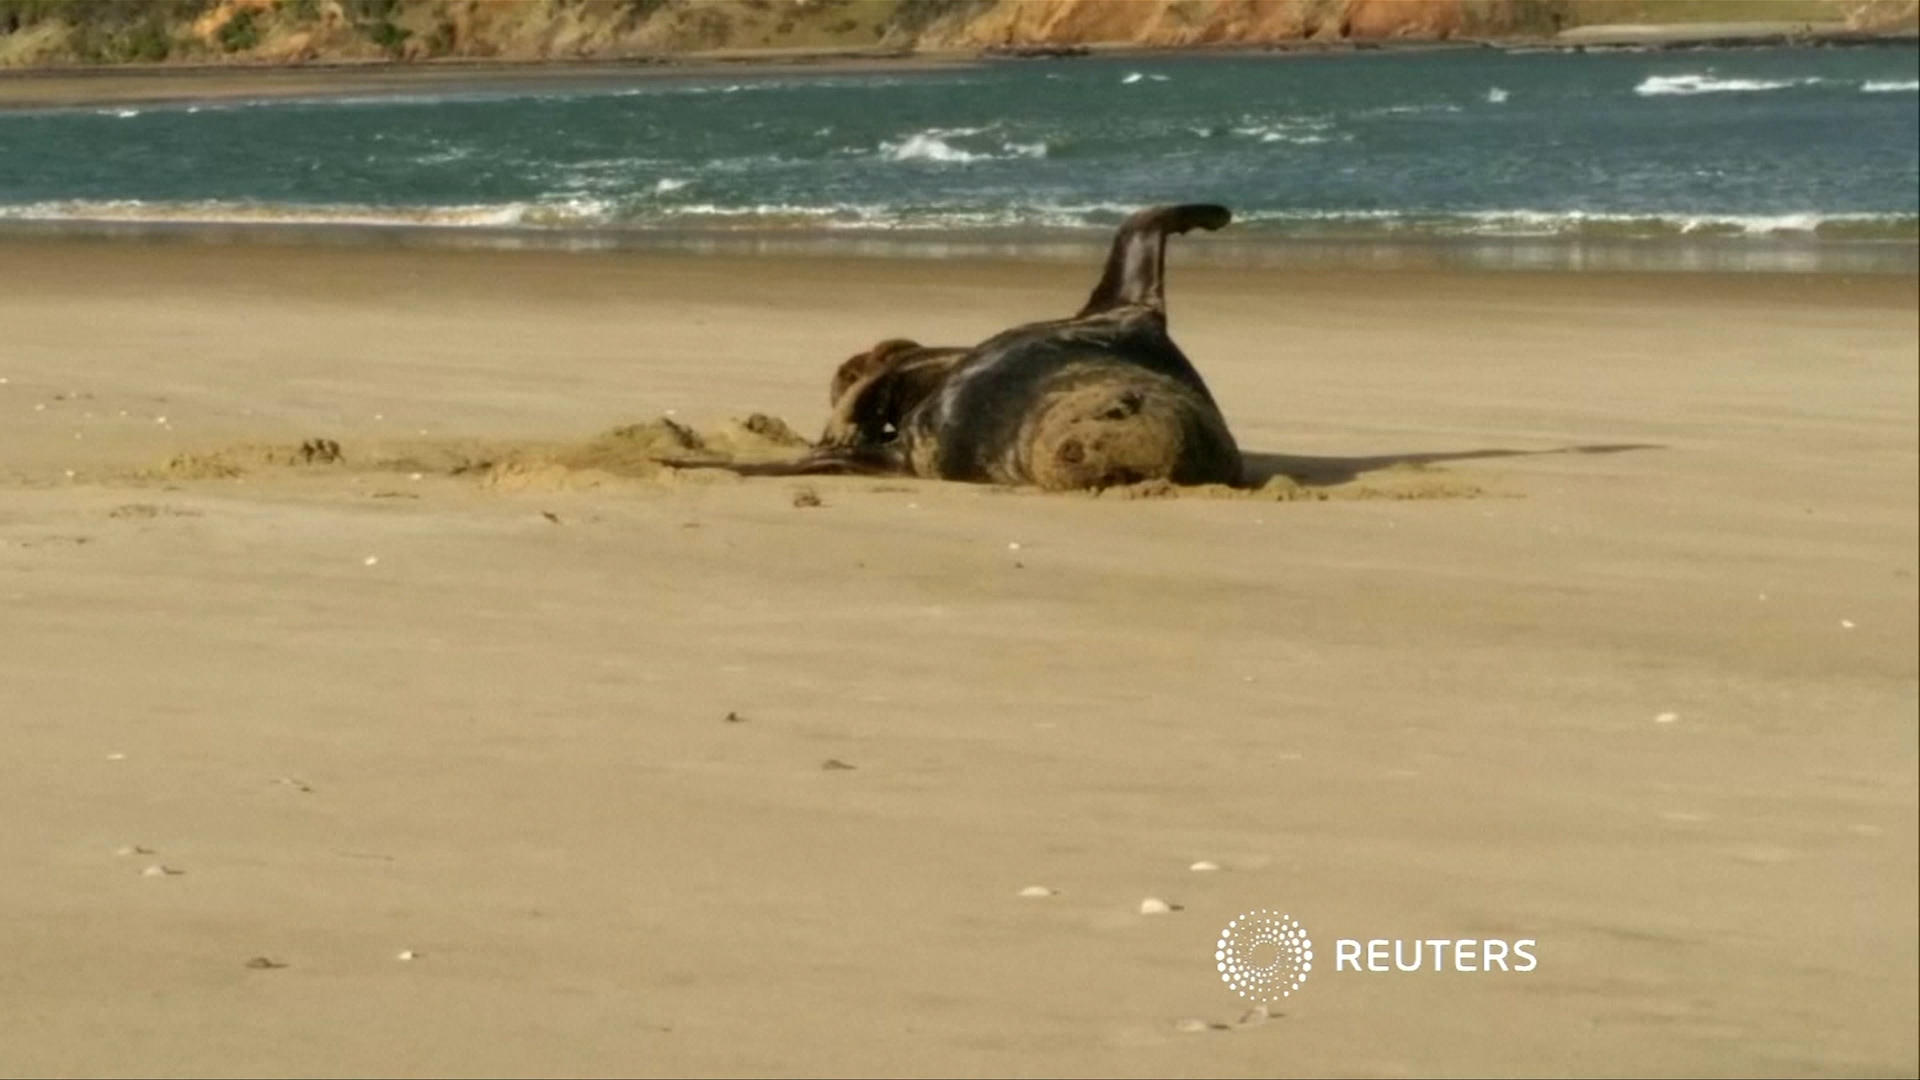 Sea lion video found on USB in frozen leopard seal poo